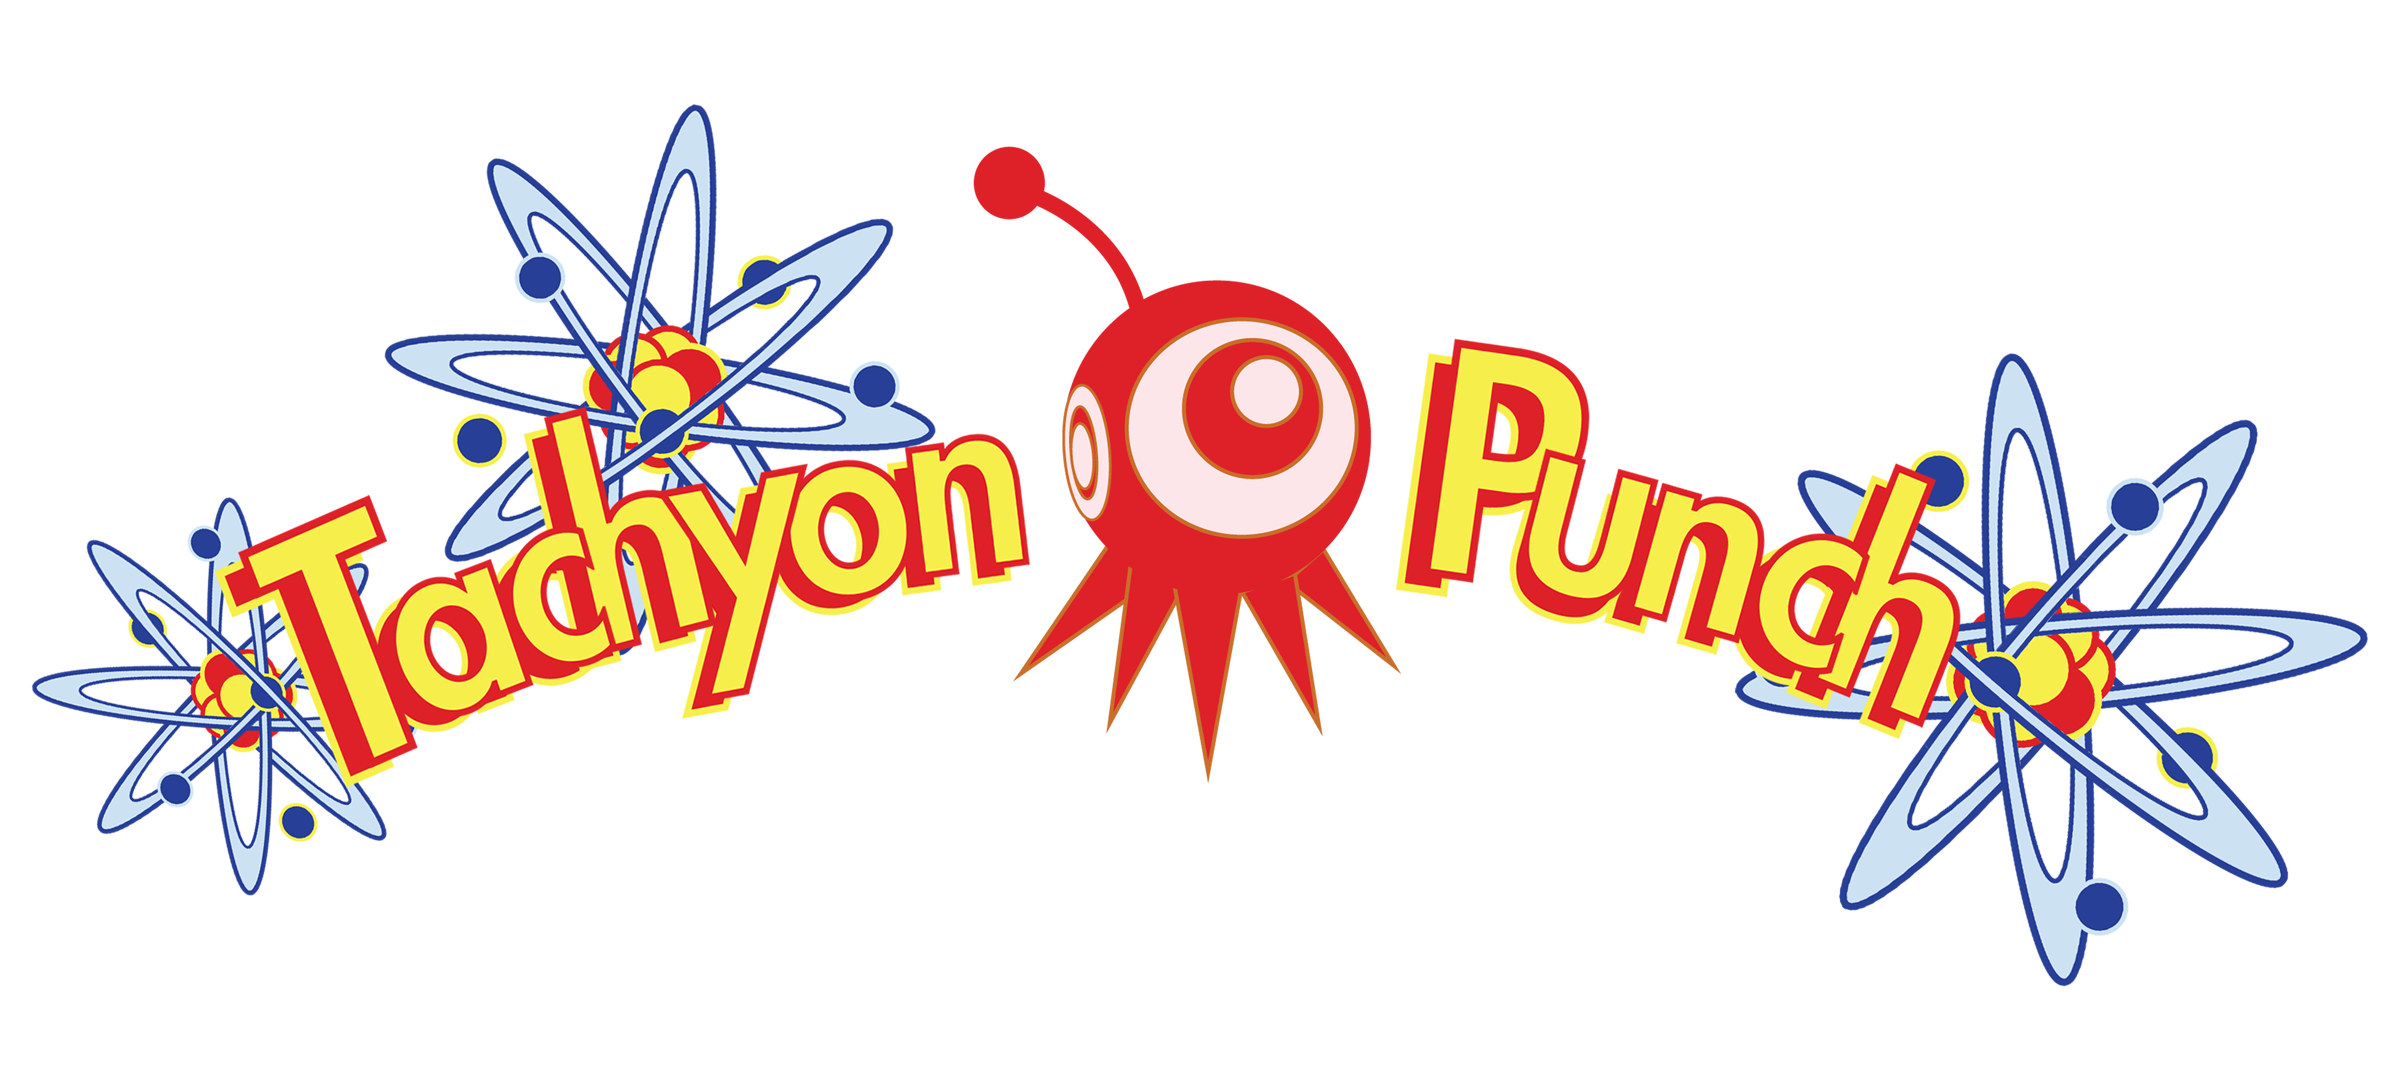 Welcome to Tachyon Punch!